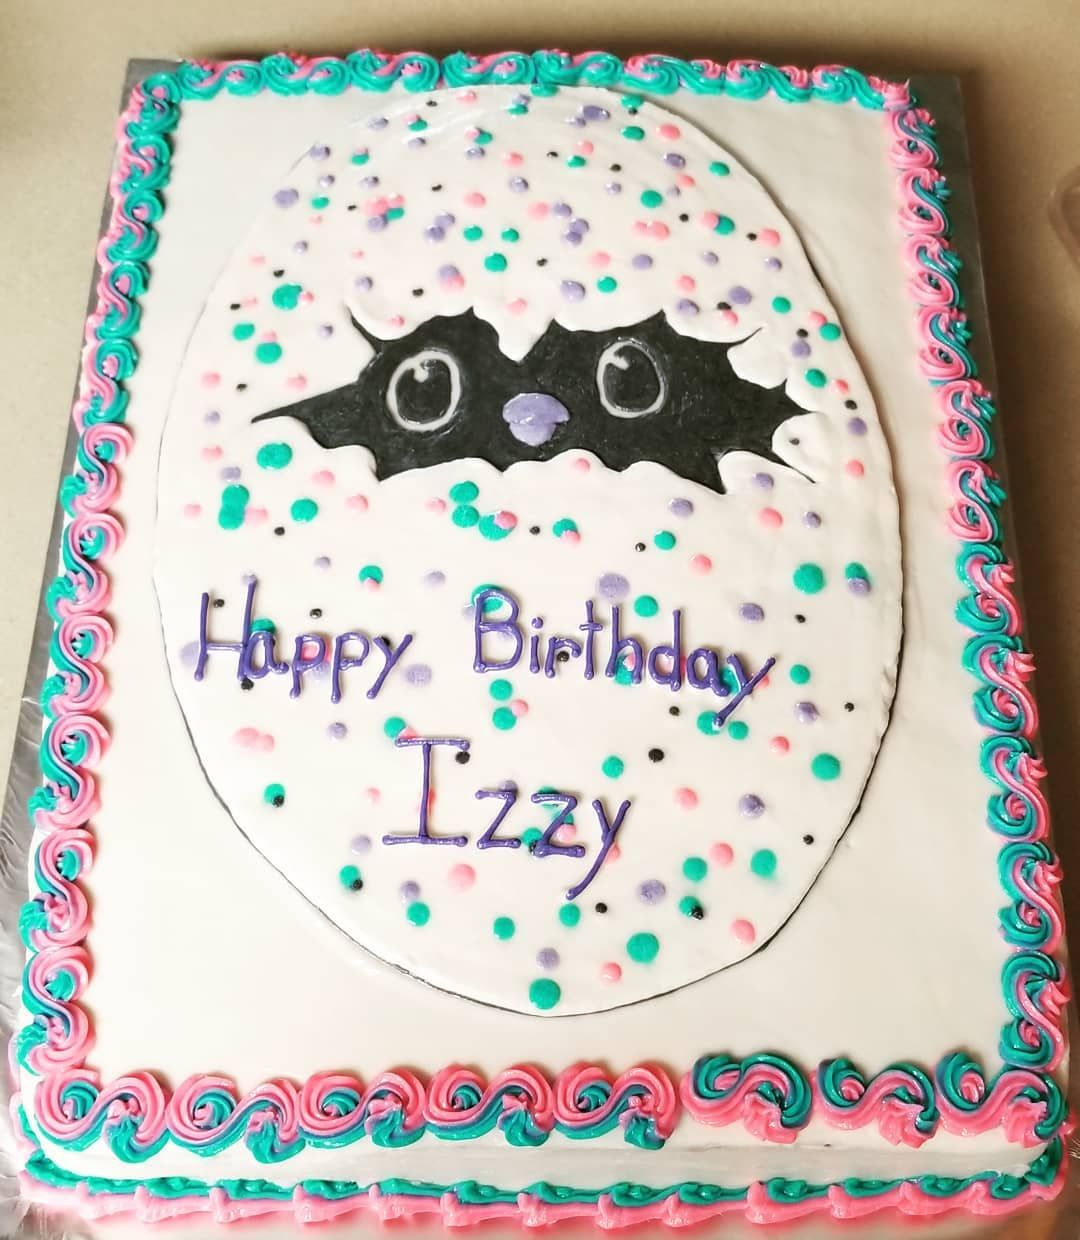 First Request For A Hatchimal Cake Happy Birthday Izzy Girl Hope You Love Your Adornconstancecookies Hatchimals Hatchimalcake